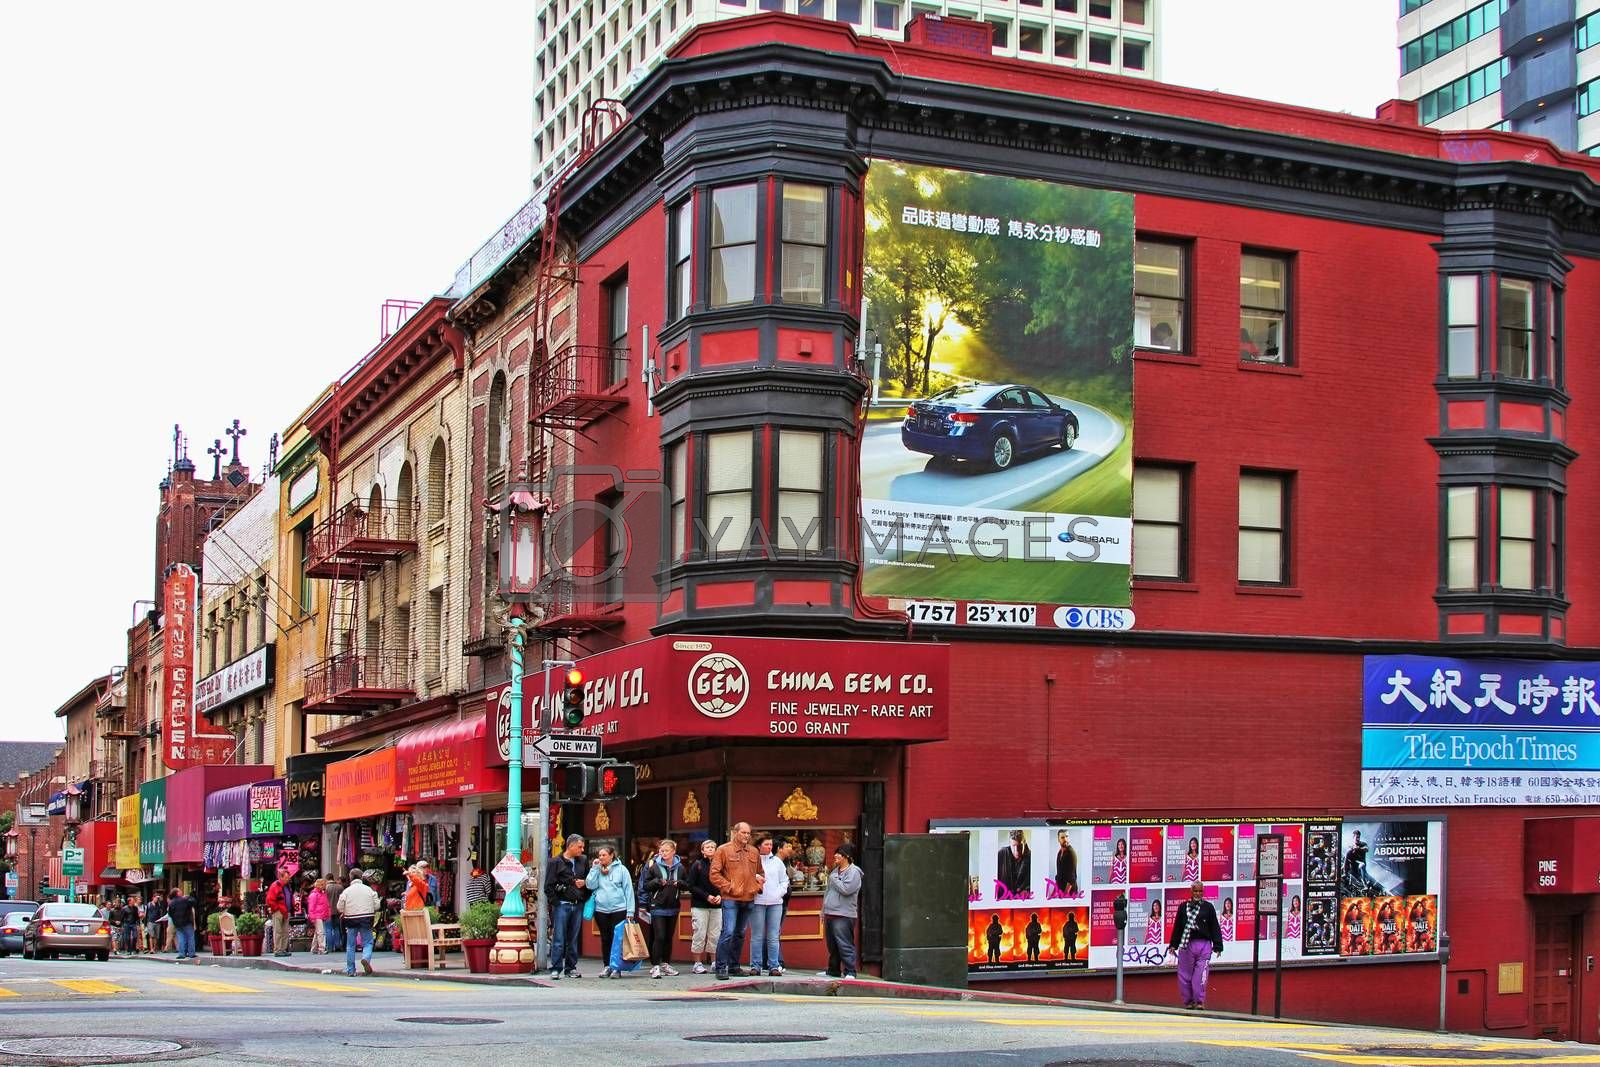 San Francisco, USA - September 15, 2011: People walking in one of the busy streets in San Francisco.